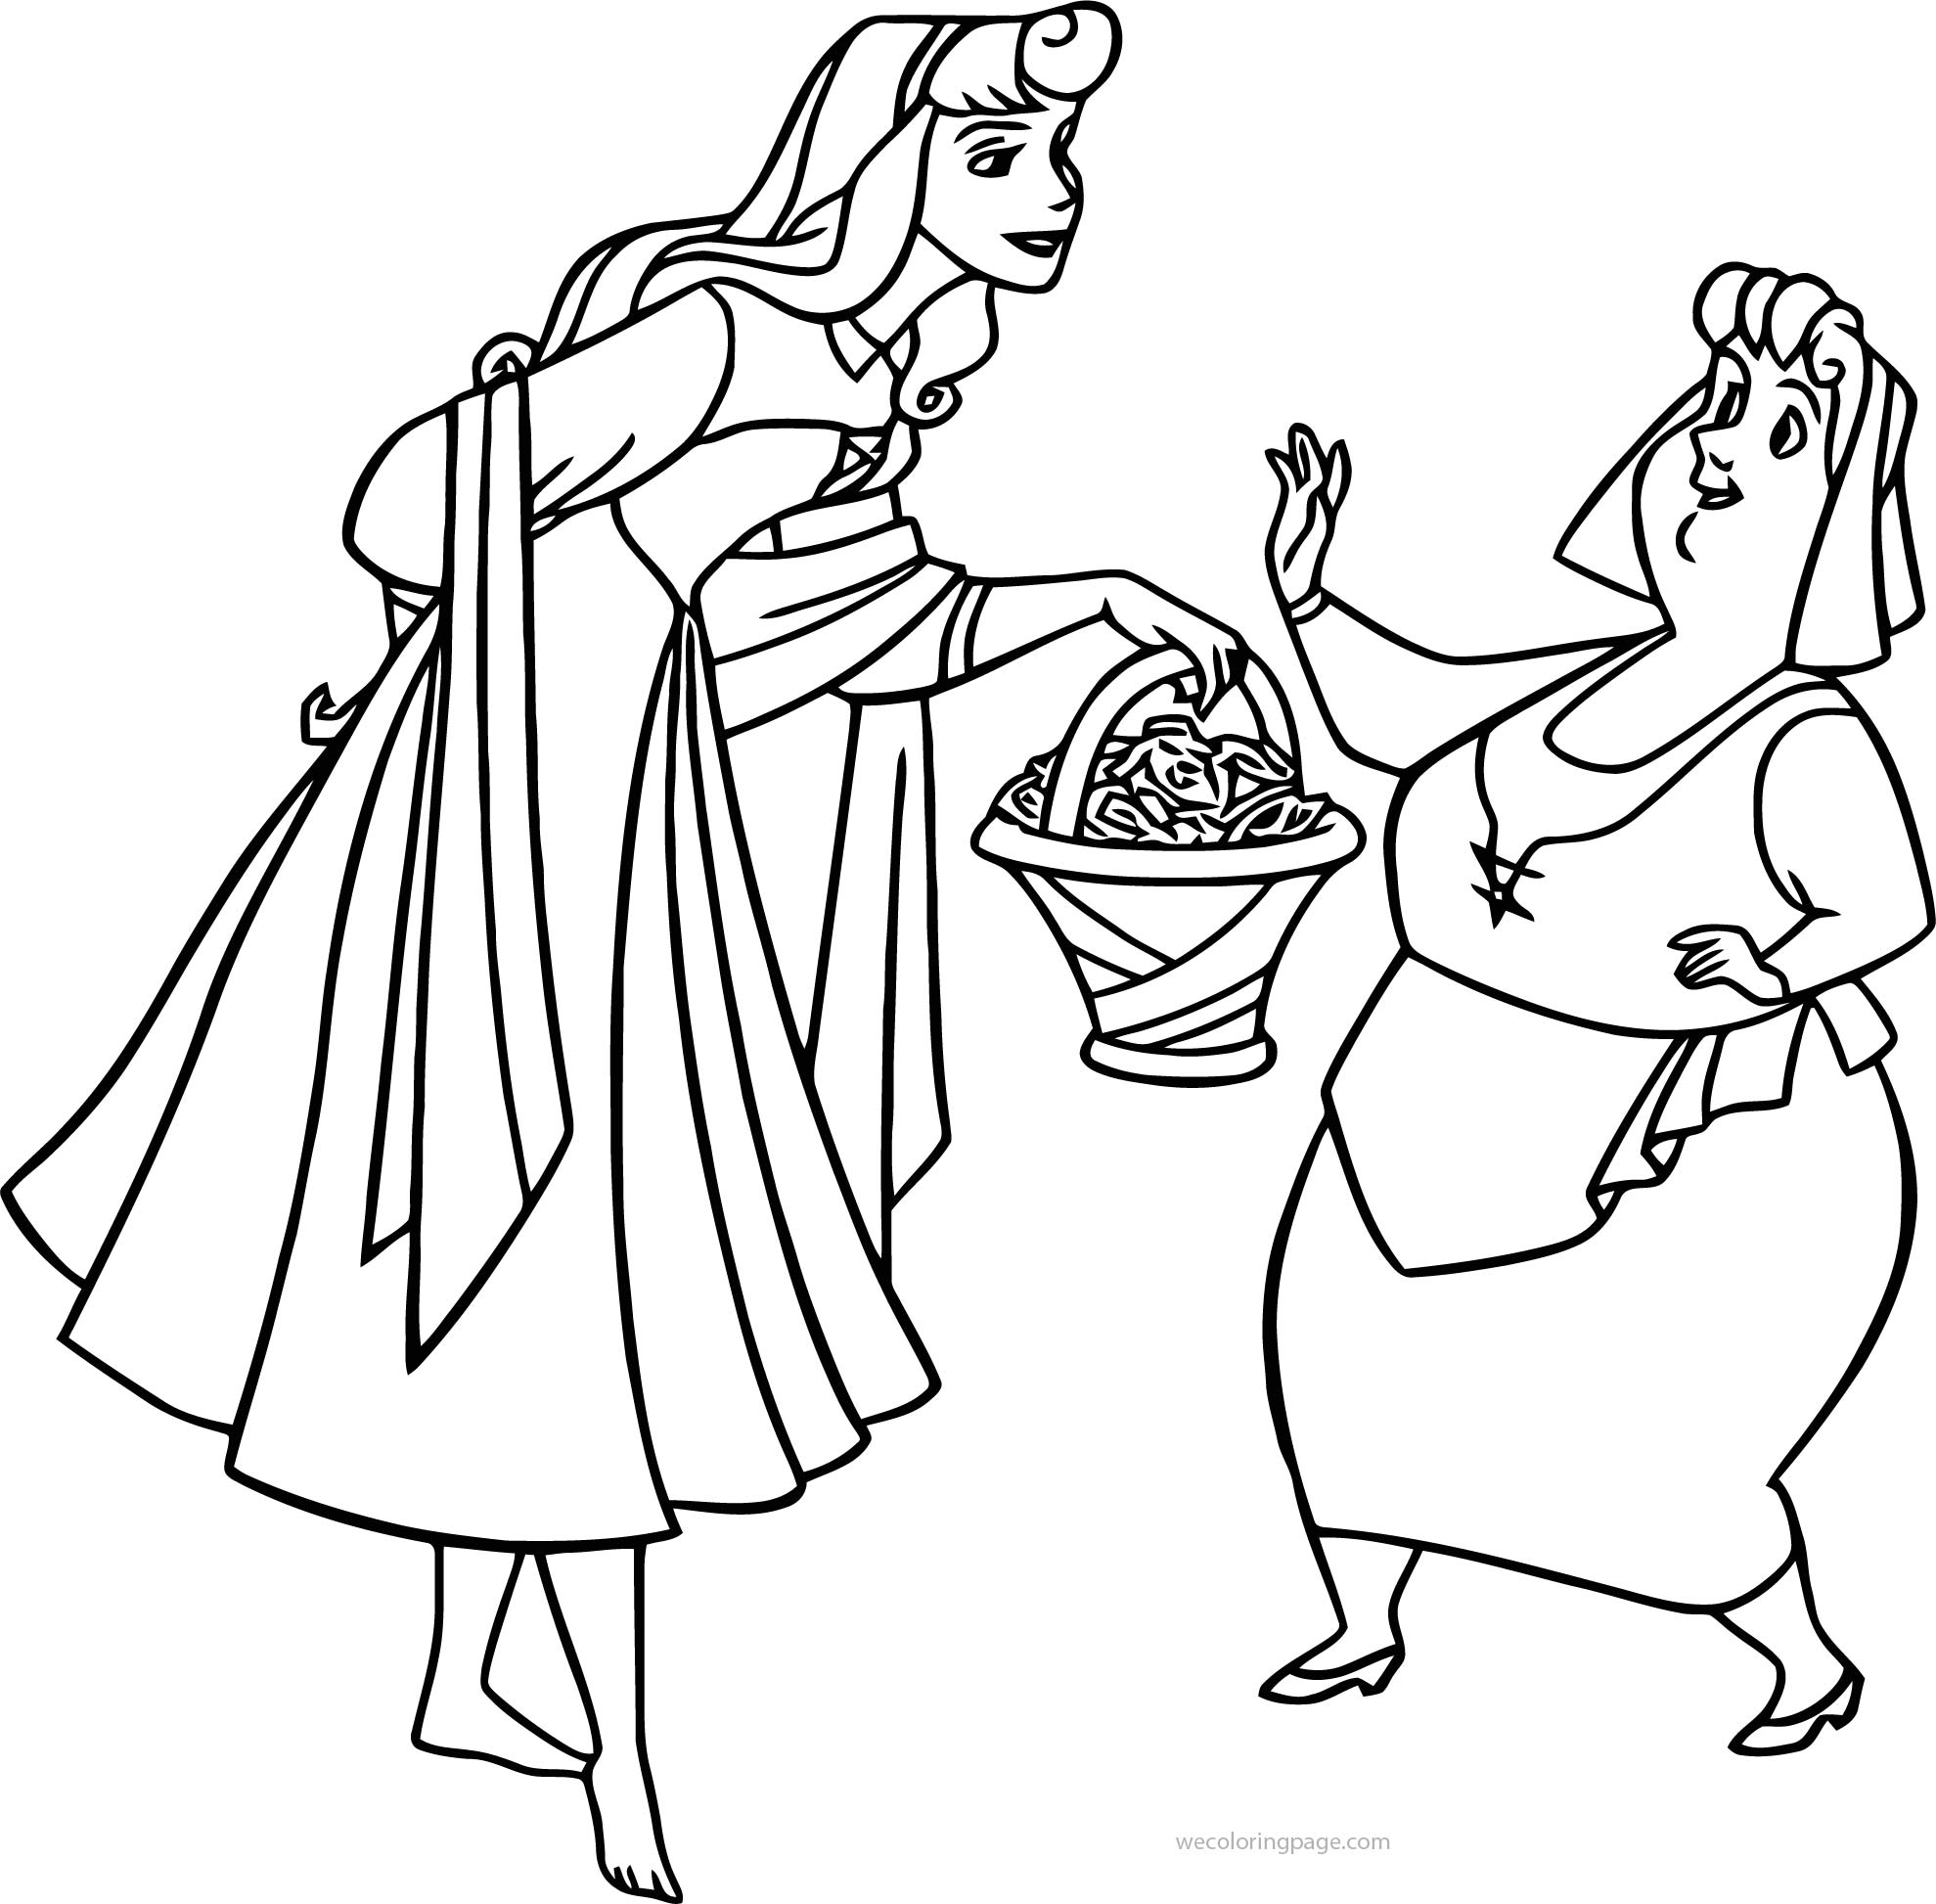 Aurora Flora Fauna and Merryweather Princess Coloring Pages